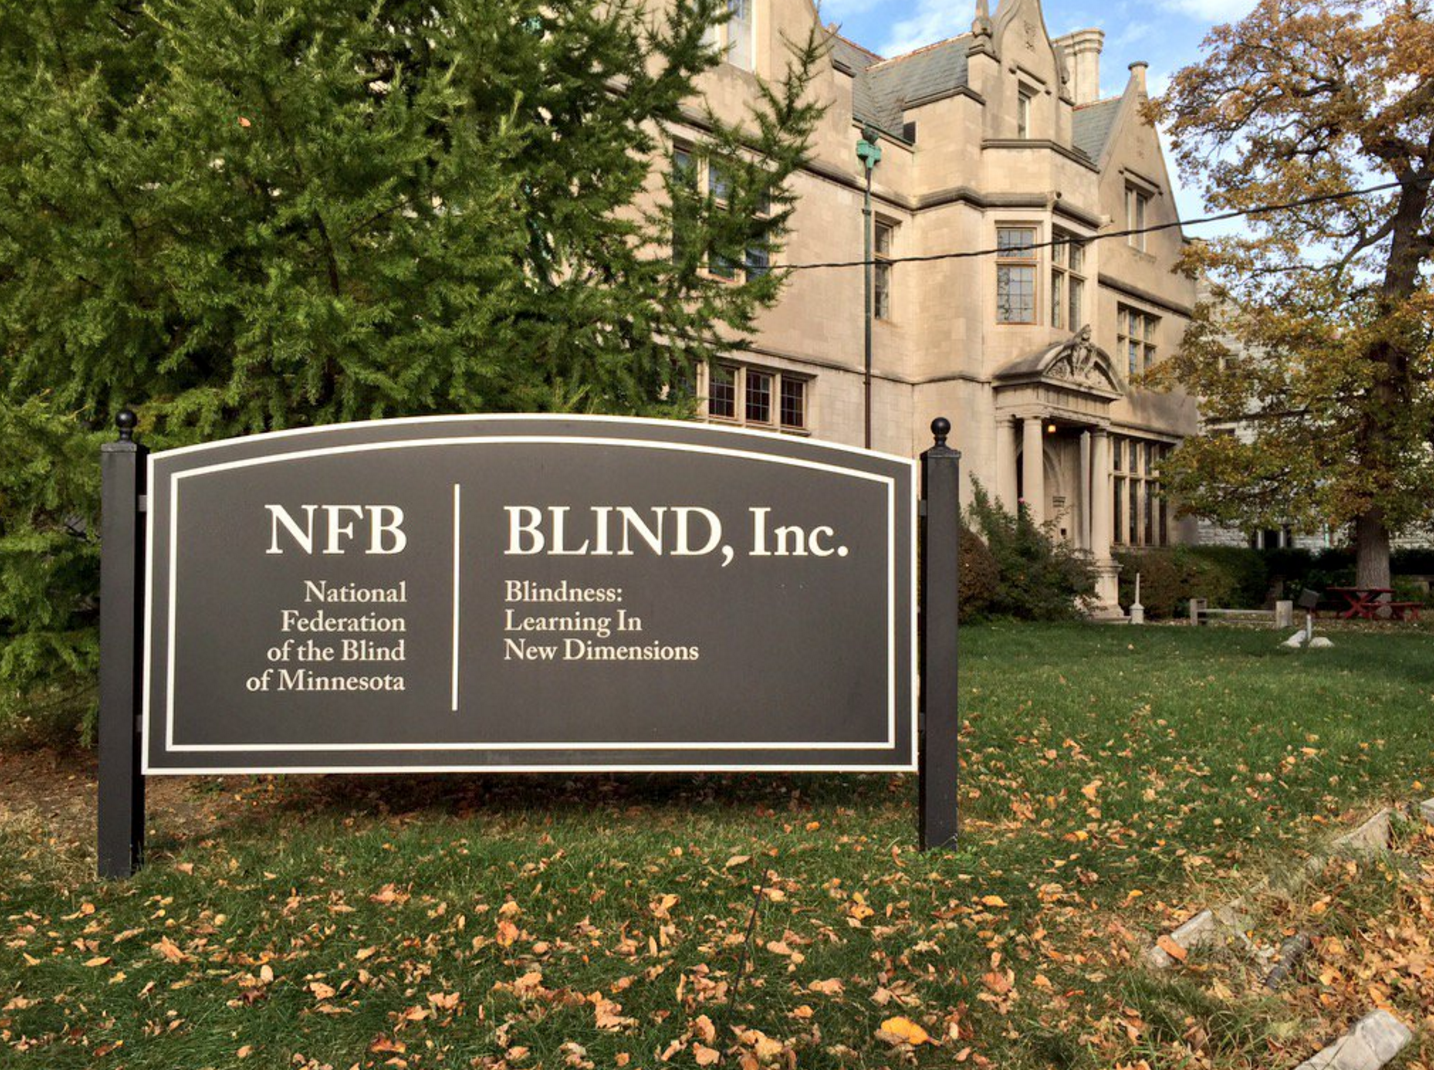 Image of the sign in front of BLIND, Inc.